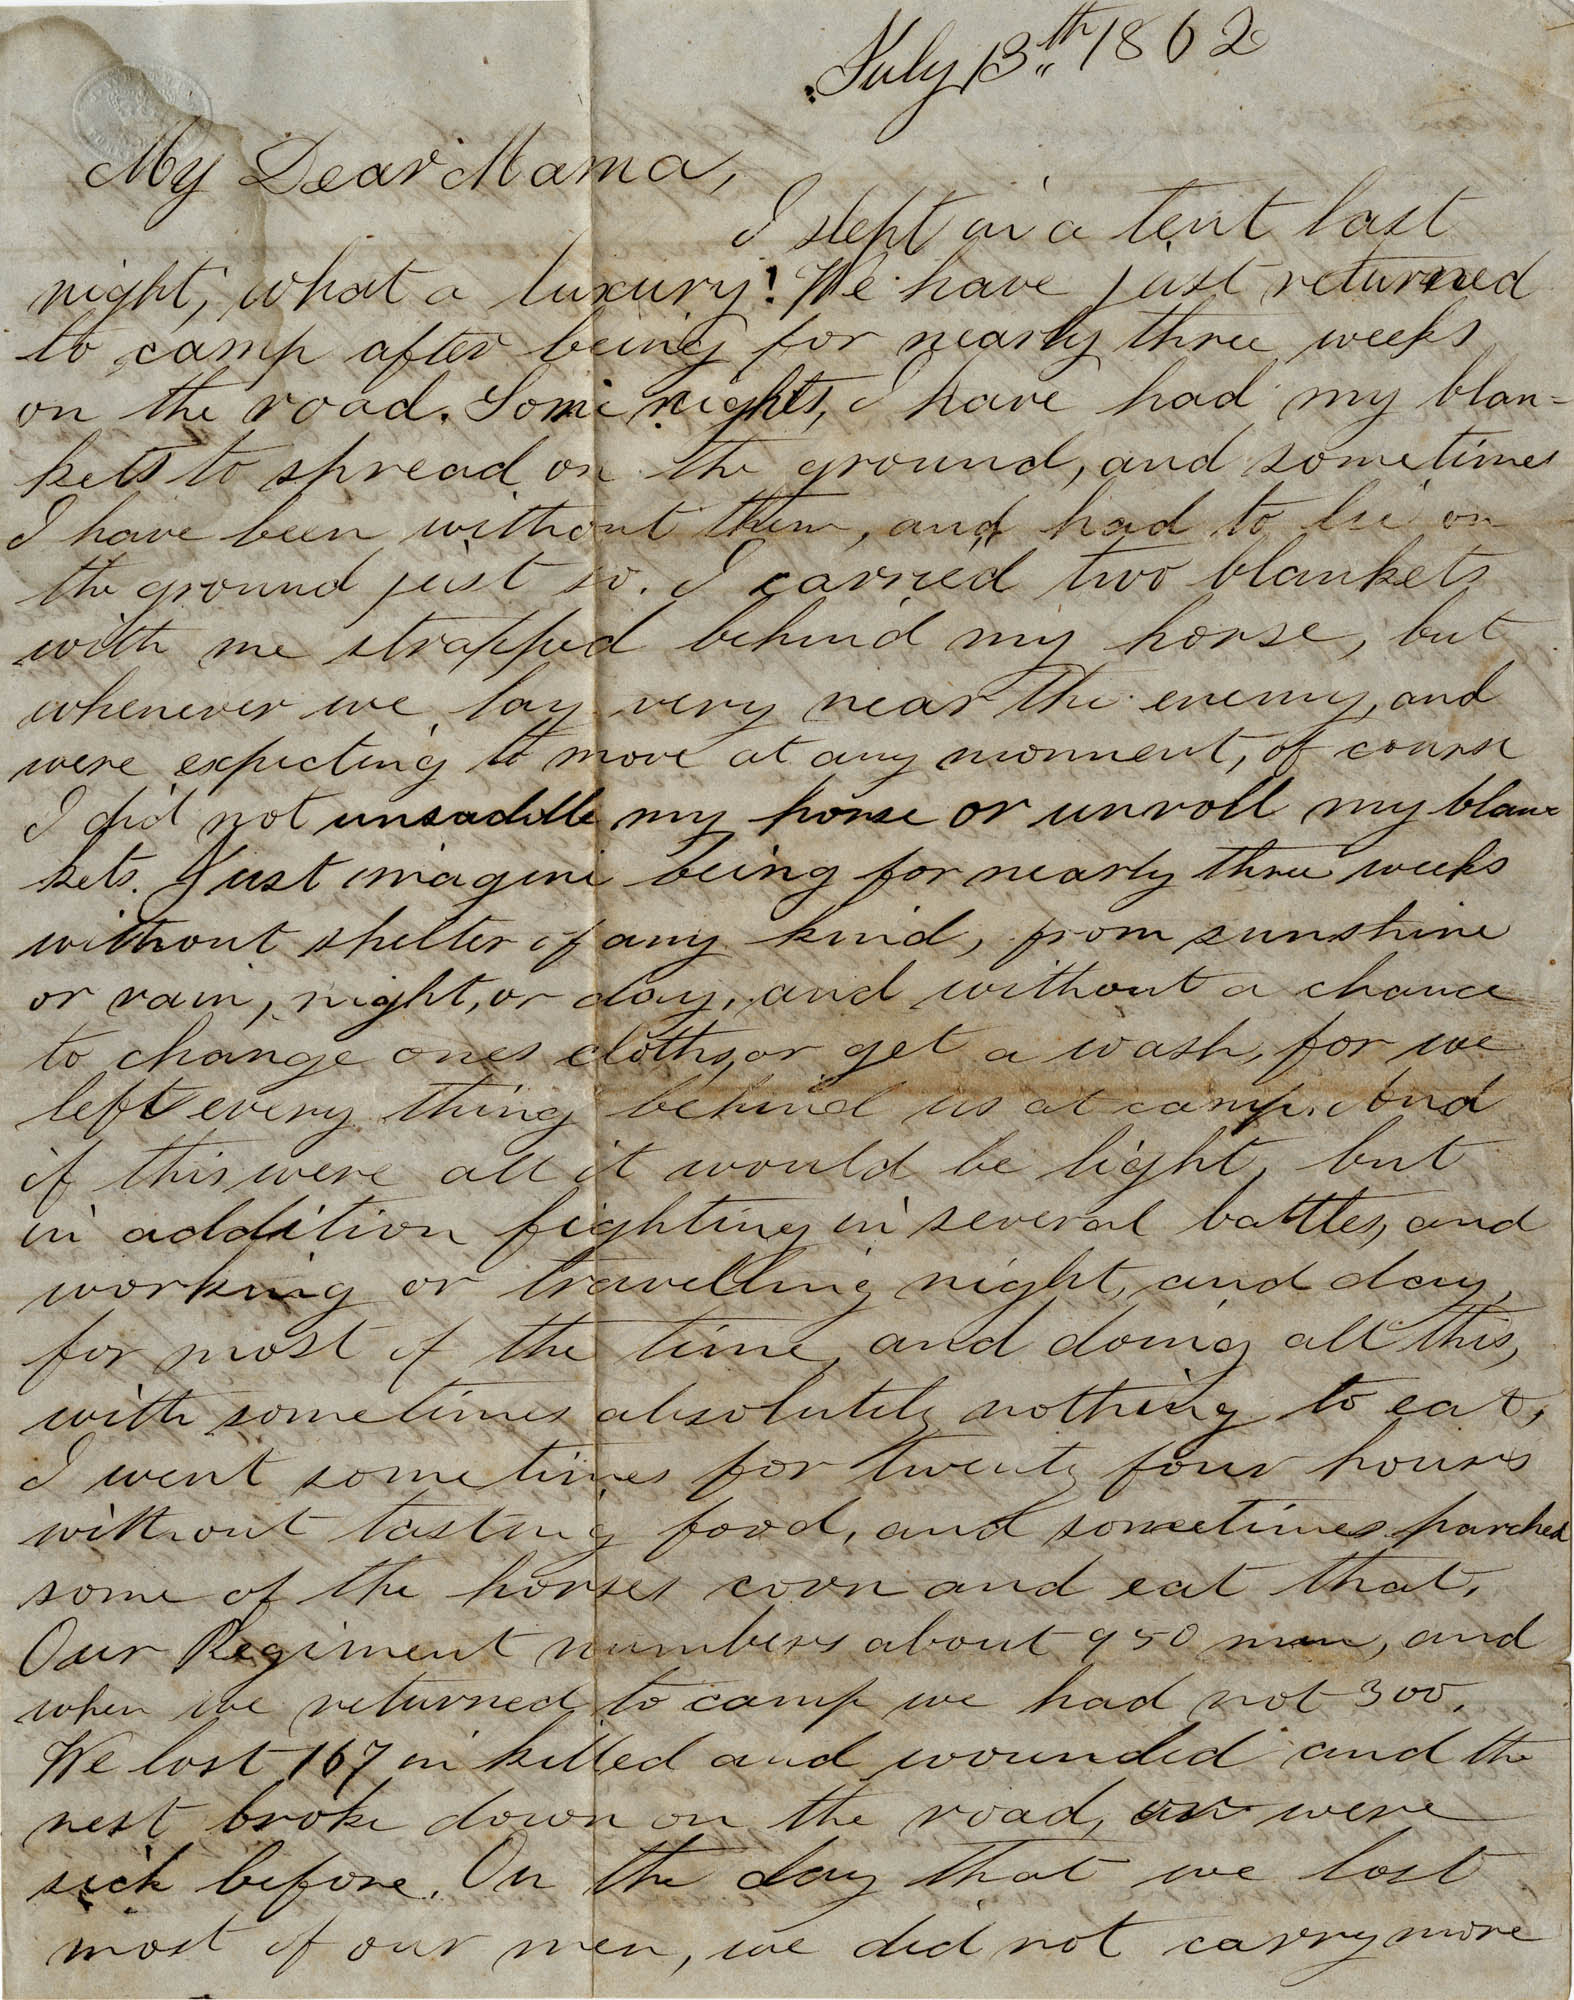 060. Willis Keith to Anna Bell Keith -- July 13, 1862